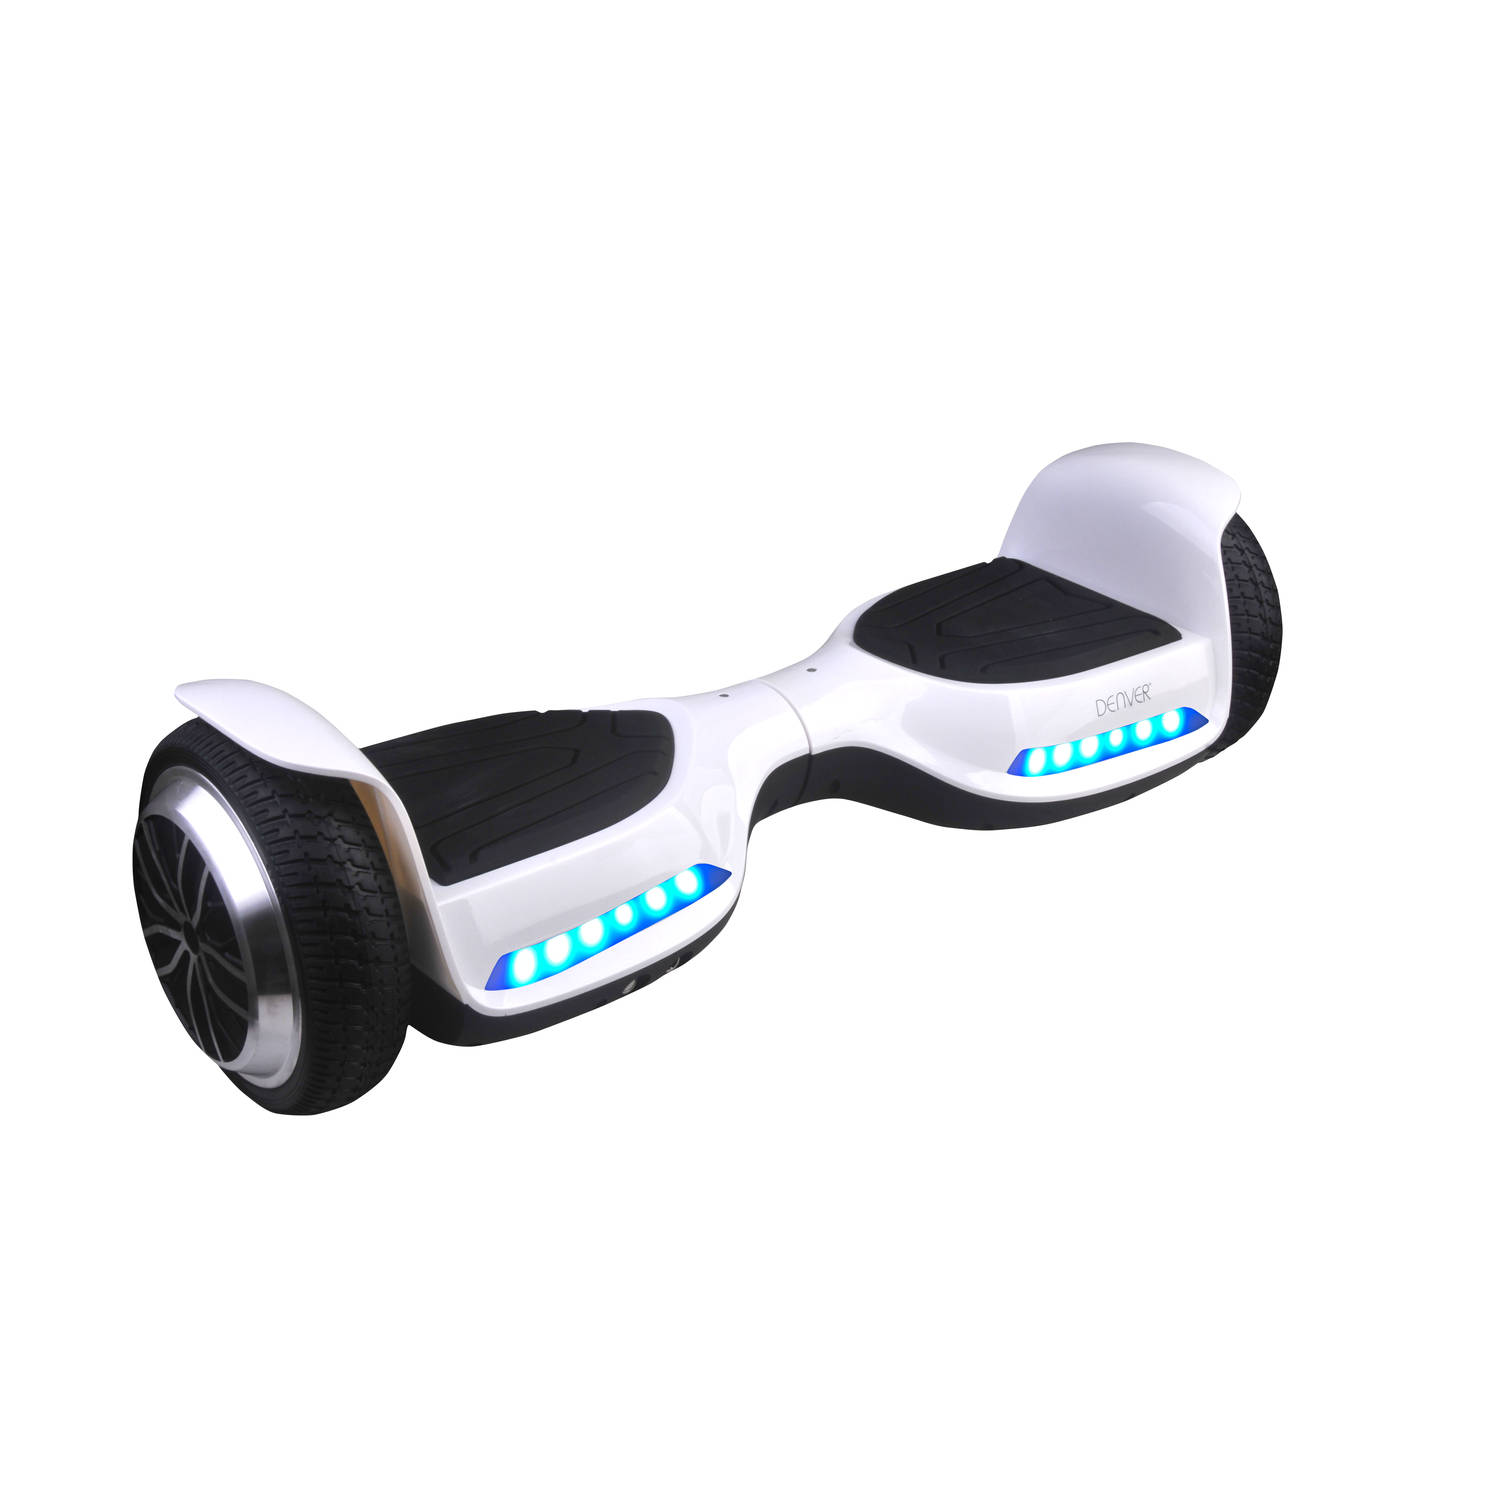 DENVER HOVERBOARD DBO-6520 WIT